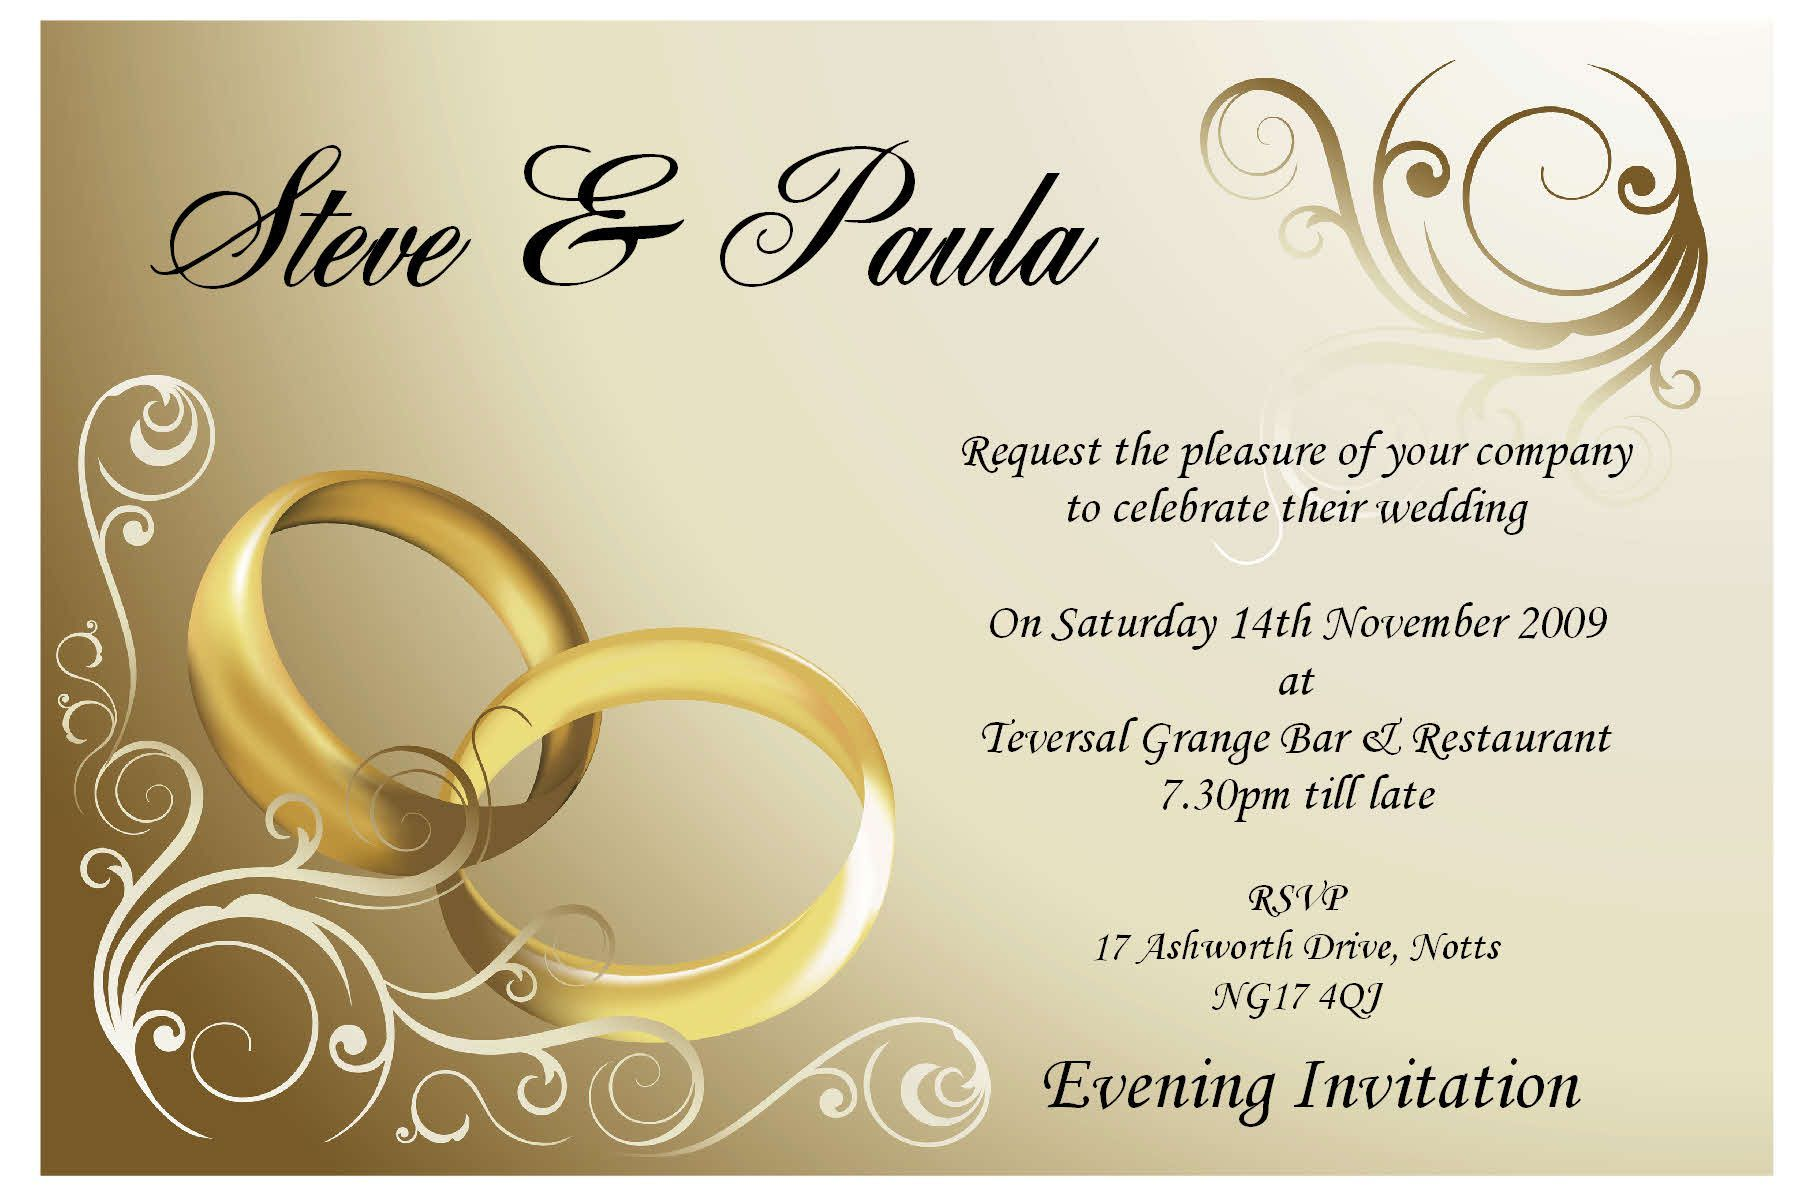 Wedding Invitation Card Design Online Free Engagement Invitation Cards Wedding Invitations Online Wedding Invitation Layout